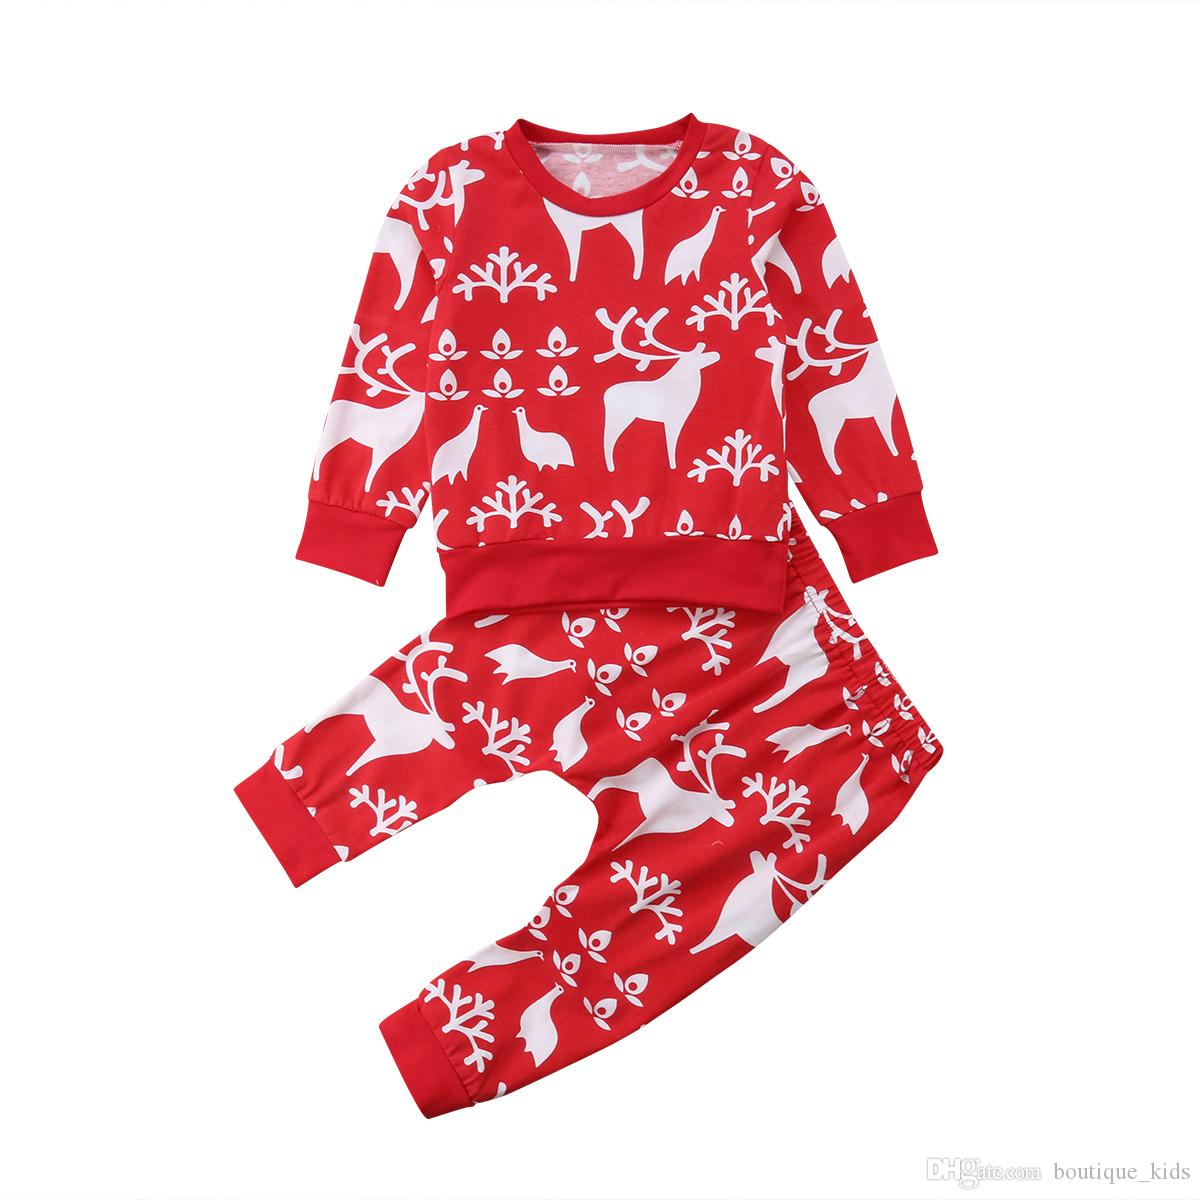 c176bc3eefac8 2019 Newborn Baby Boy Clothes Kids Christmas Clothing Girls Red Xmas  Reindeer Tops Pants 2PCS Outfits Toddler Children Boutique Clothing Set